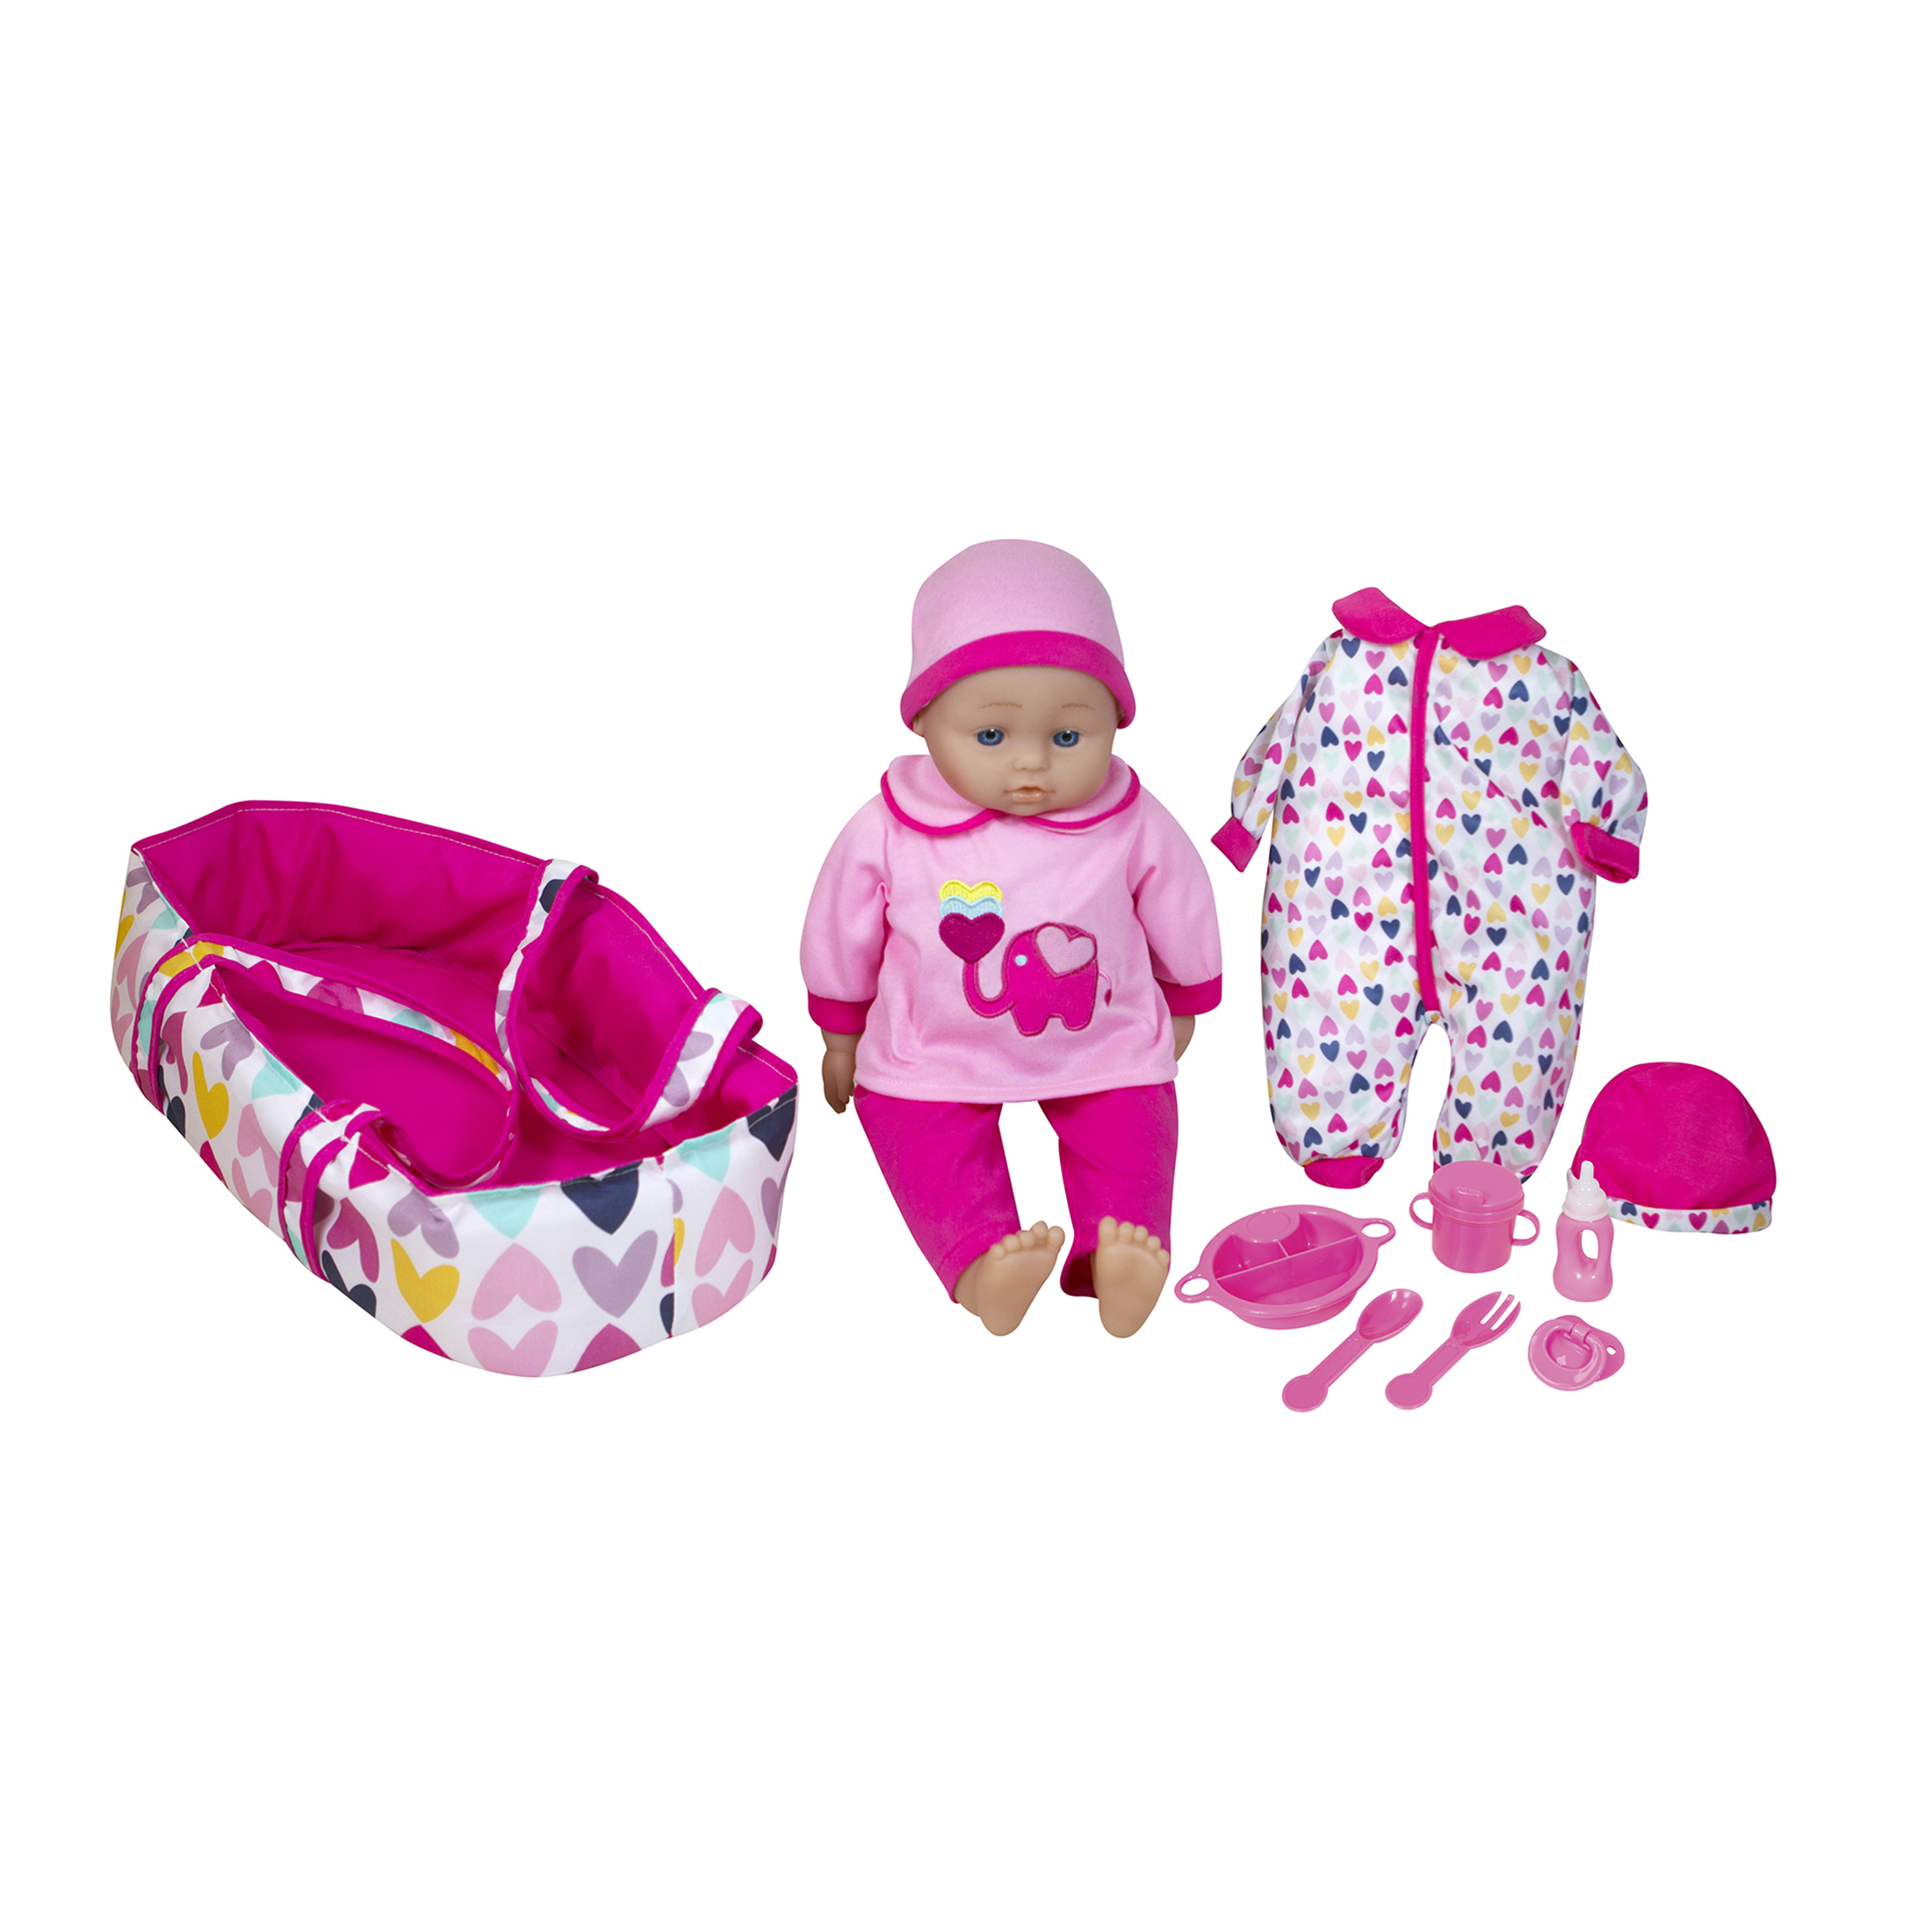 "Lissi 16"" Talking Baby doll with Accessories"